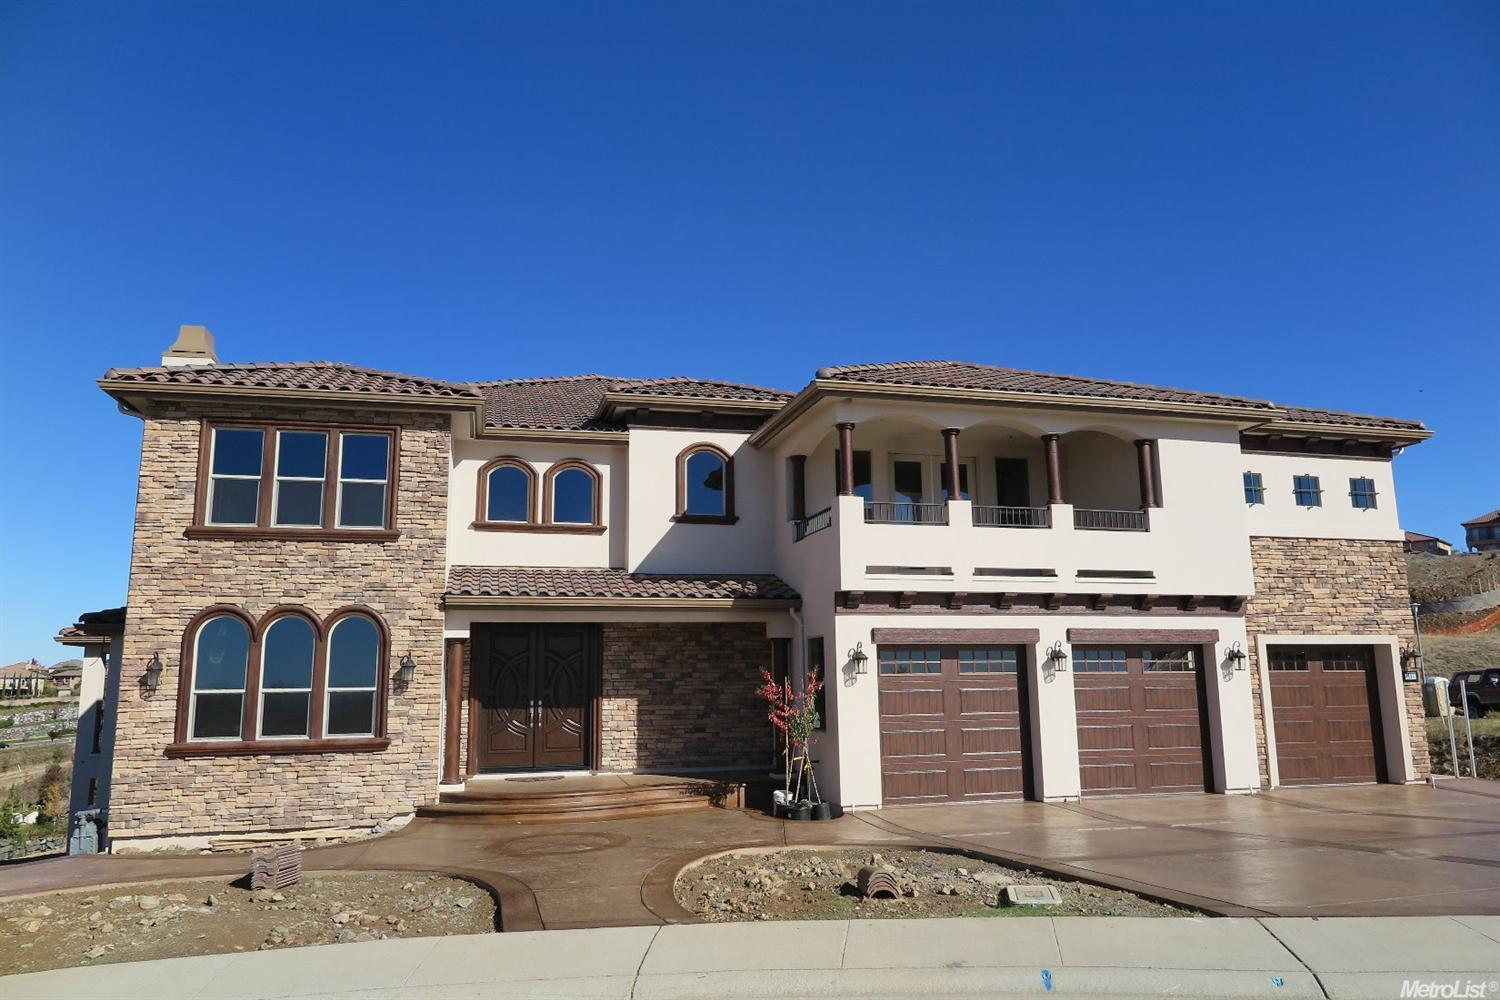 NEWER HOME IN SOUGHT AFTER UPSCALE TERRAZZO ESTATES. Z-EST $1.7M+ Built By McCoy Homes in 2015 on The Corner Lot & Adjoining Lot Combined Into .90 Acres. (The Other 3 Ruan Court Lots Sold For Avg. $280K) This Home is 6,682 Sq.Ft. (Per Seller Appraisal 04/20/16) w/ Six (6) Bedrooms and (6.5) Bathrooms on 3 Levels.  Tile and Laminate Floors, Granite Counters, Huge Kitchen w/ 6' x 10' Single Piece Granite Island.  Separate Bar and Pantry Closet.  One 3 Car Attached Garage and One 2 Car Attached Gar